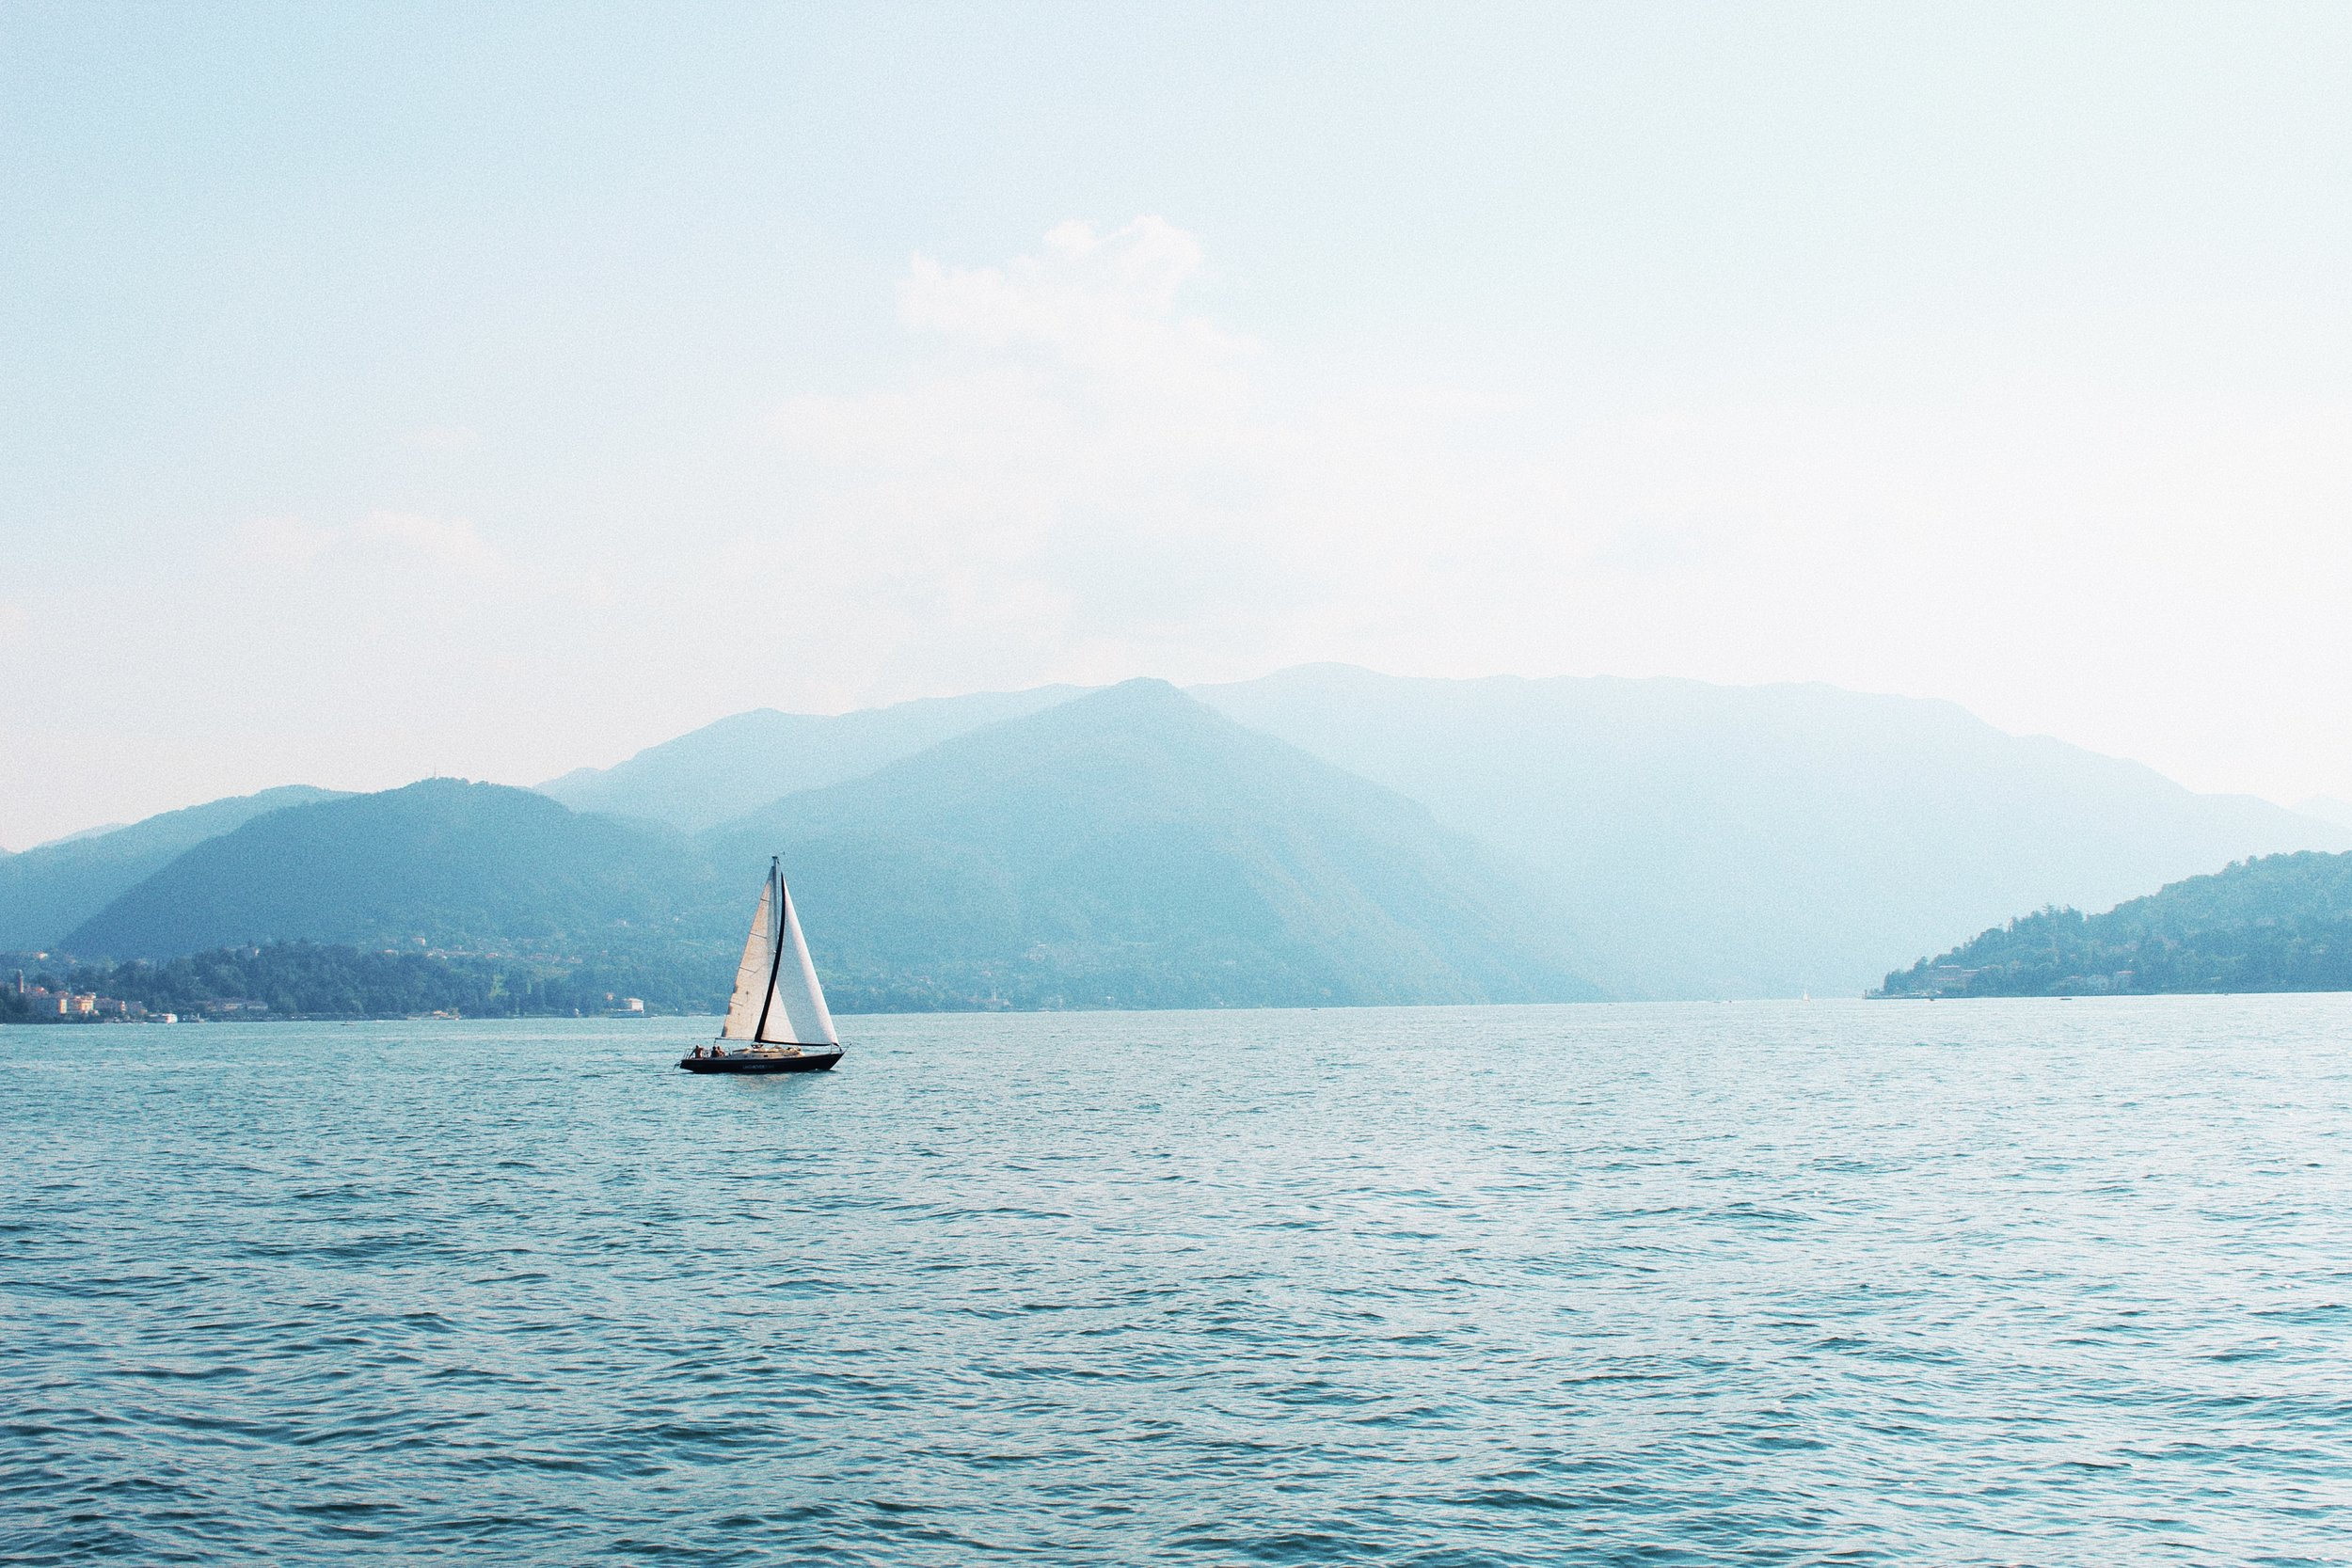 The waters of Lake Como.